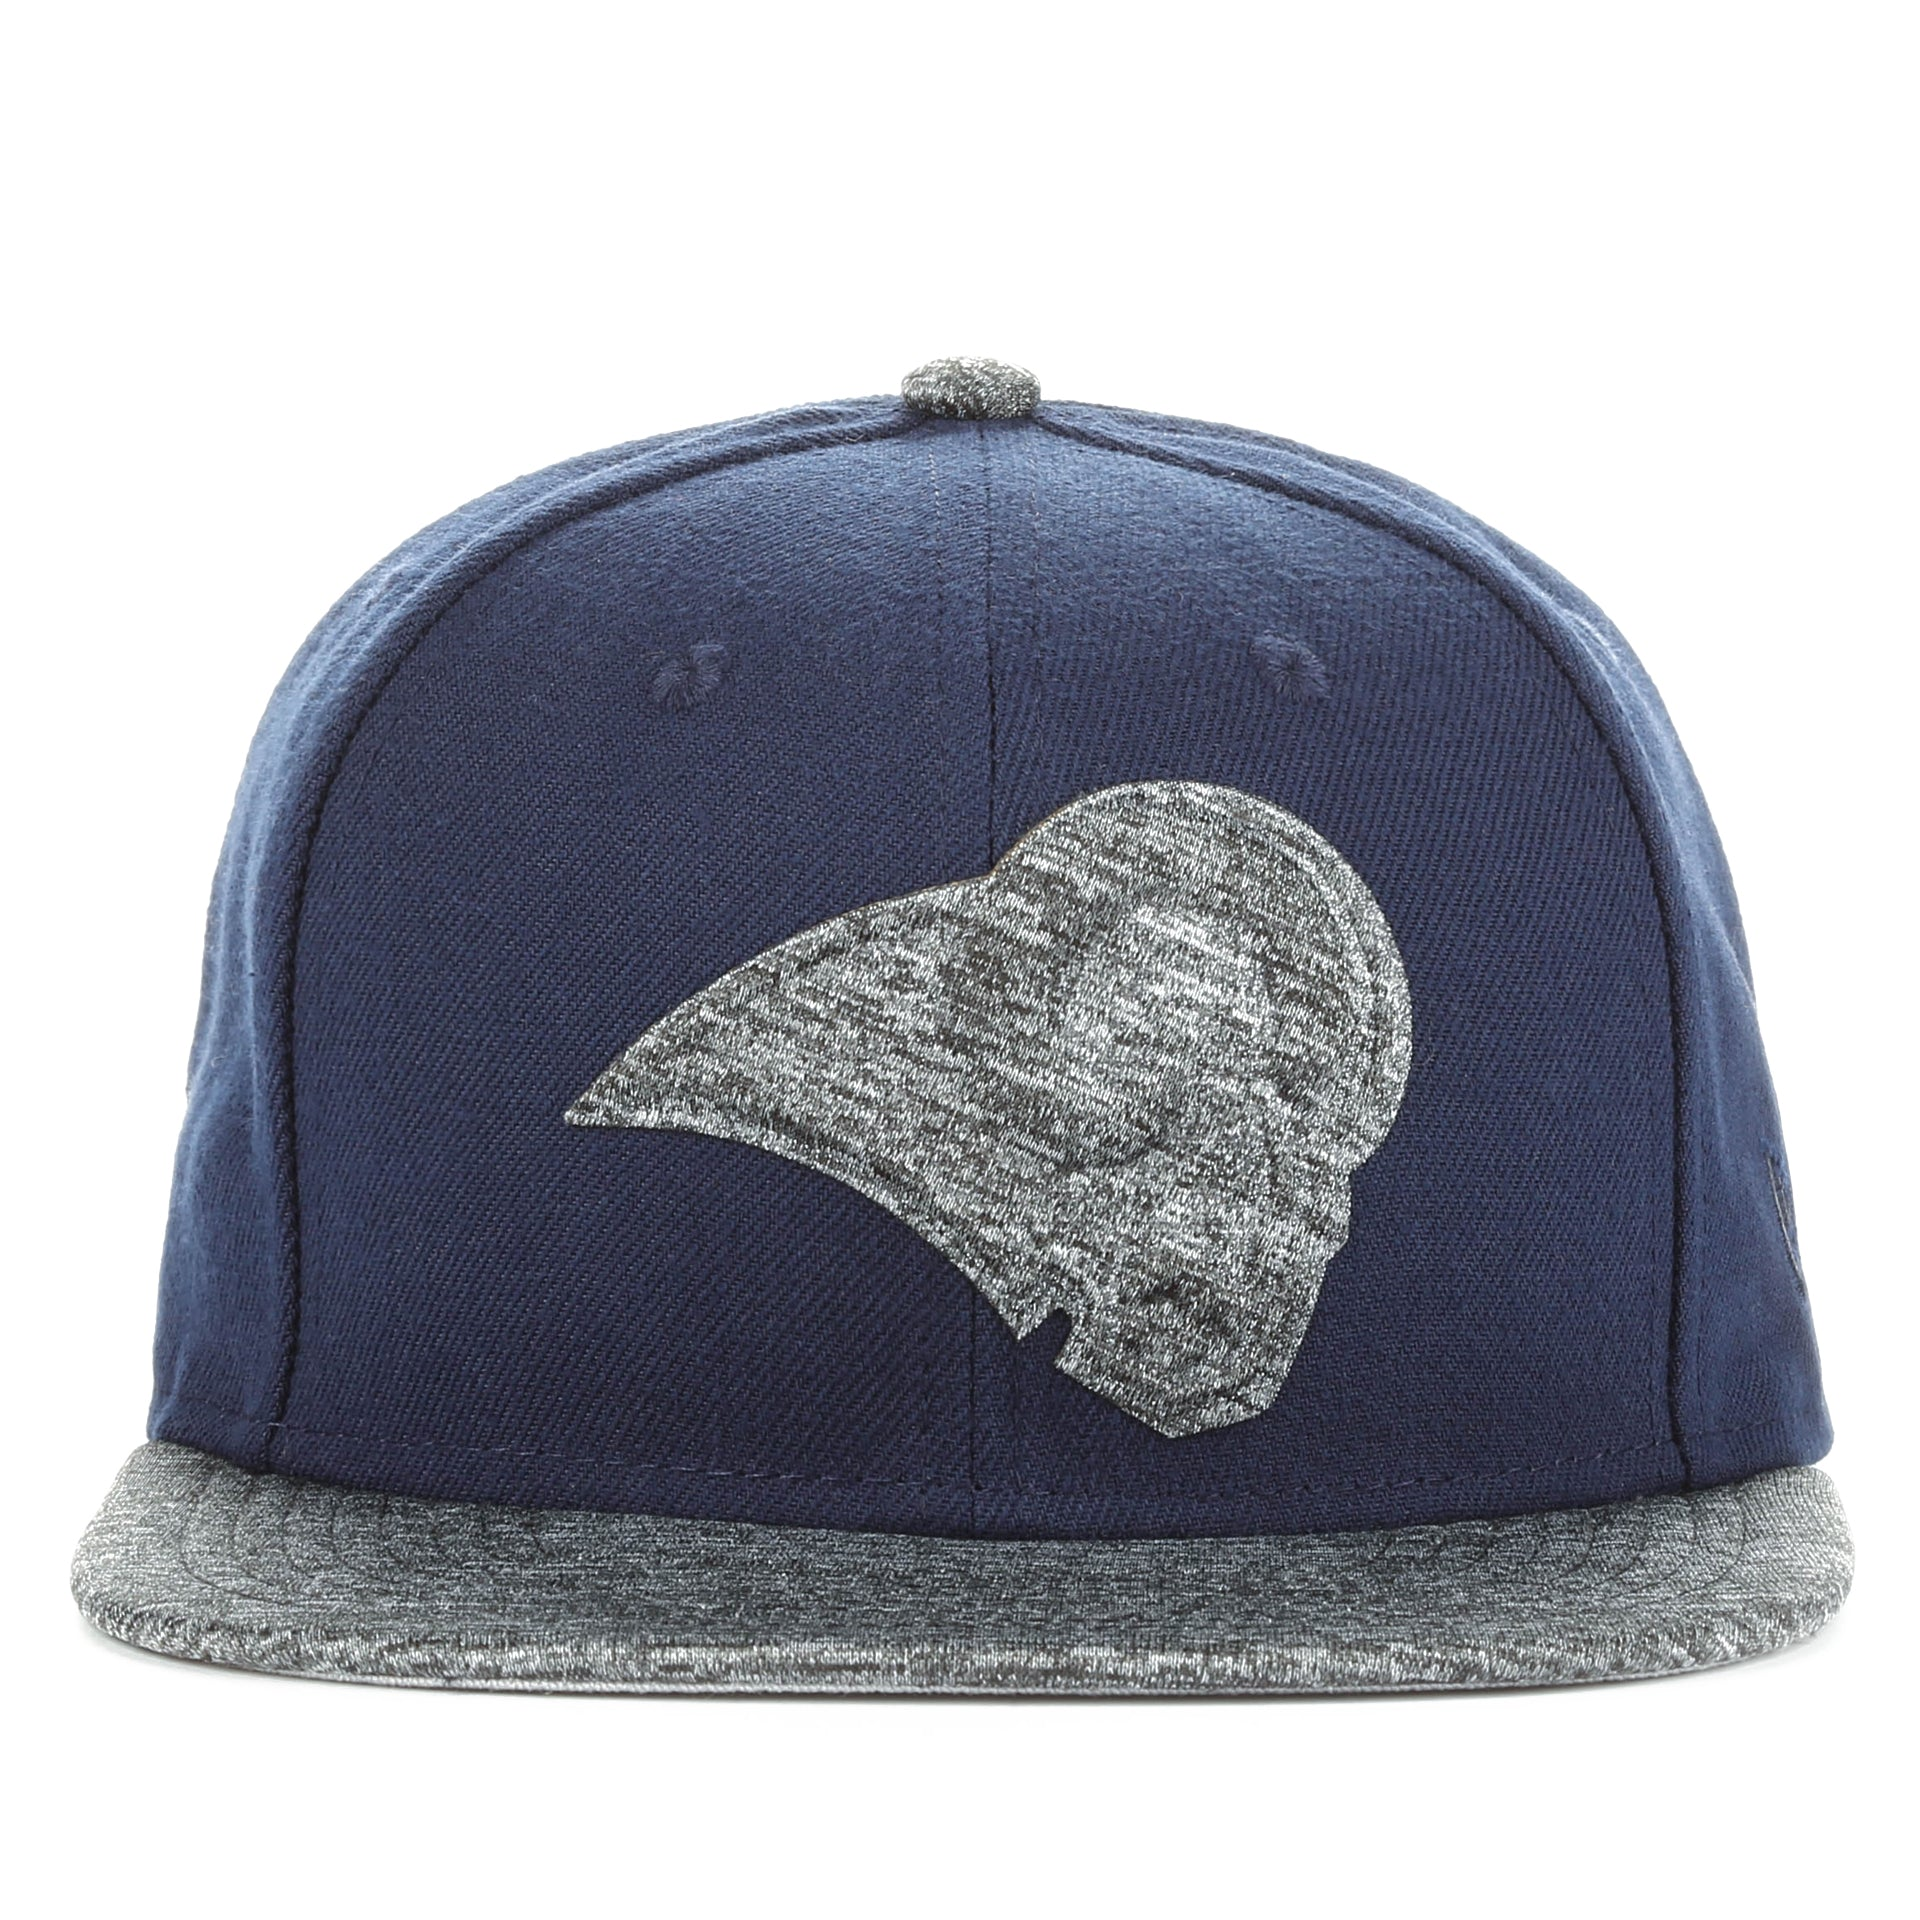 reputable site ef96f c469d New Era 9Fifty Shadow Filled Snapback - Los Angeles Rams Navy